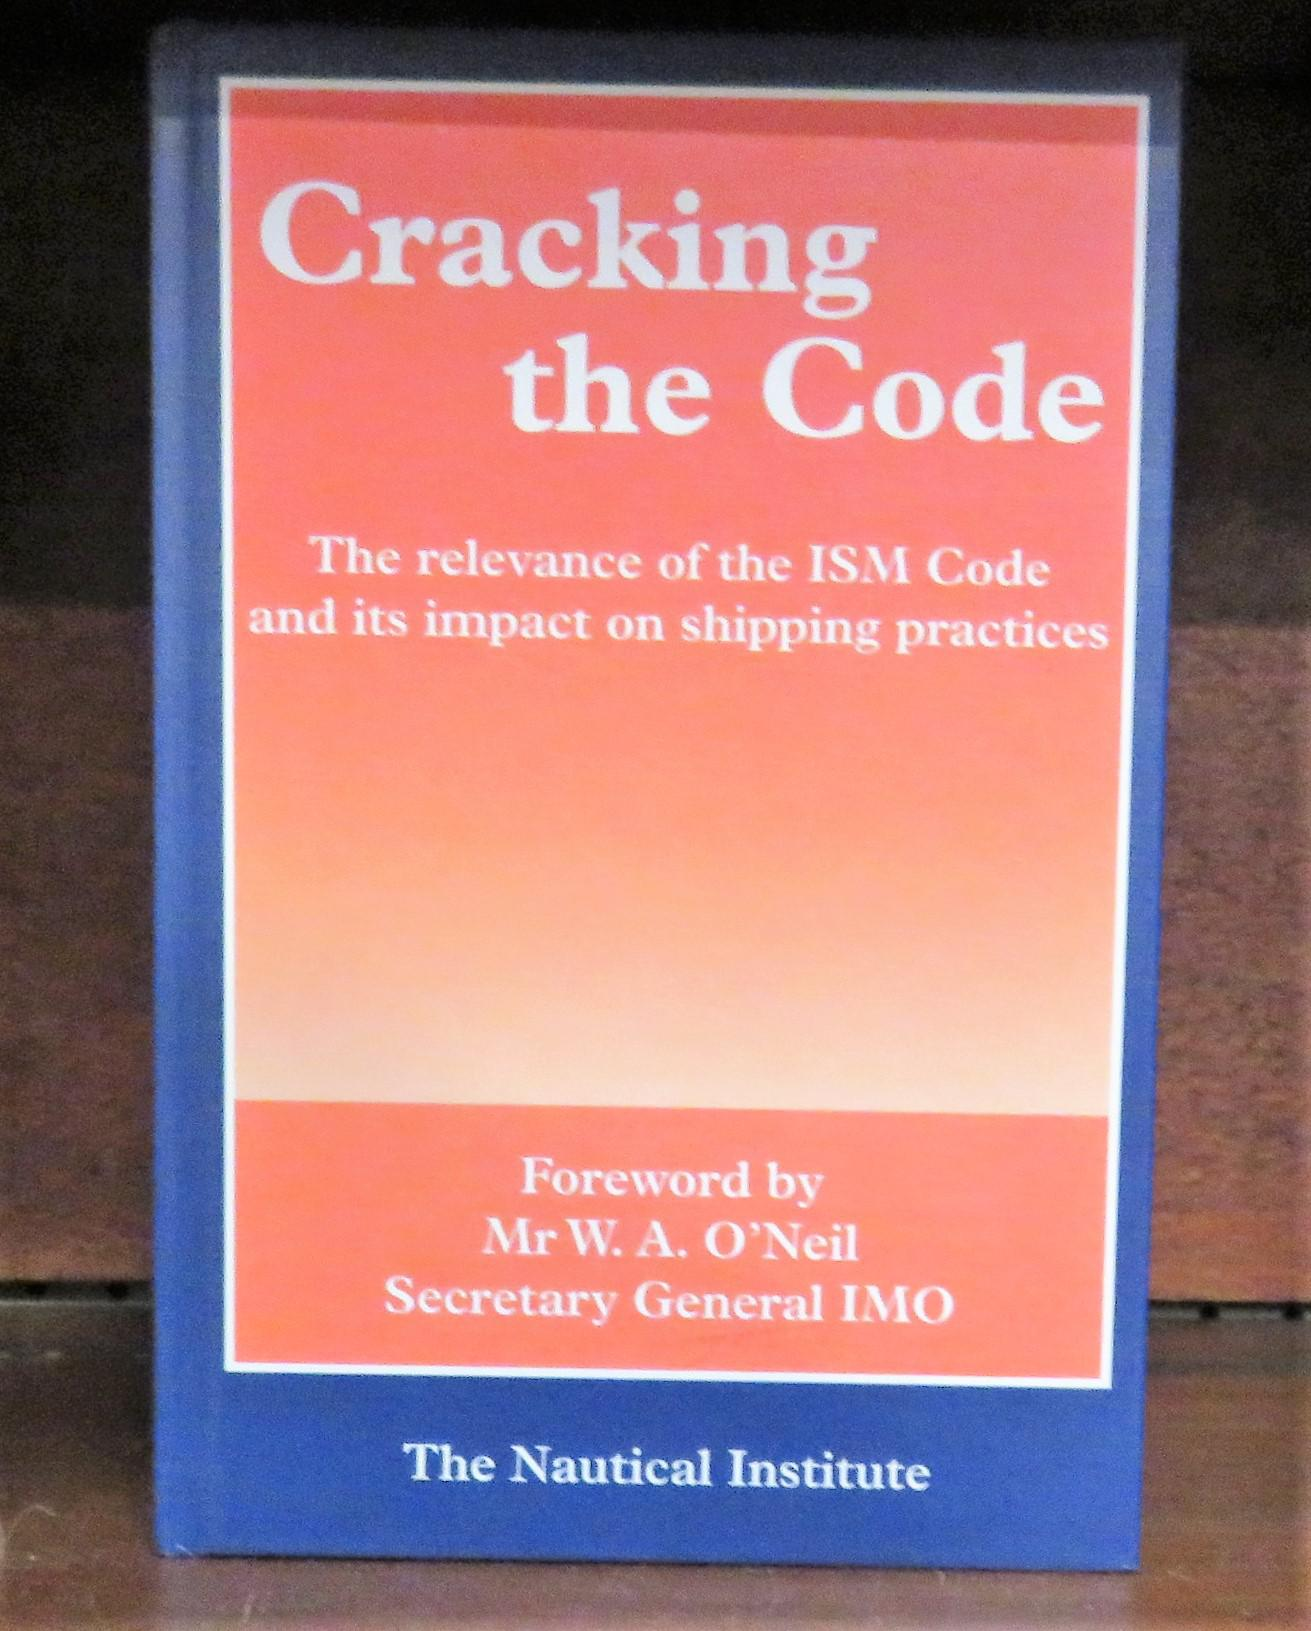 Cracking the Code The Relevance of the ISM Code and Its Impact on Shipping Practices